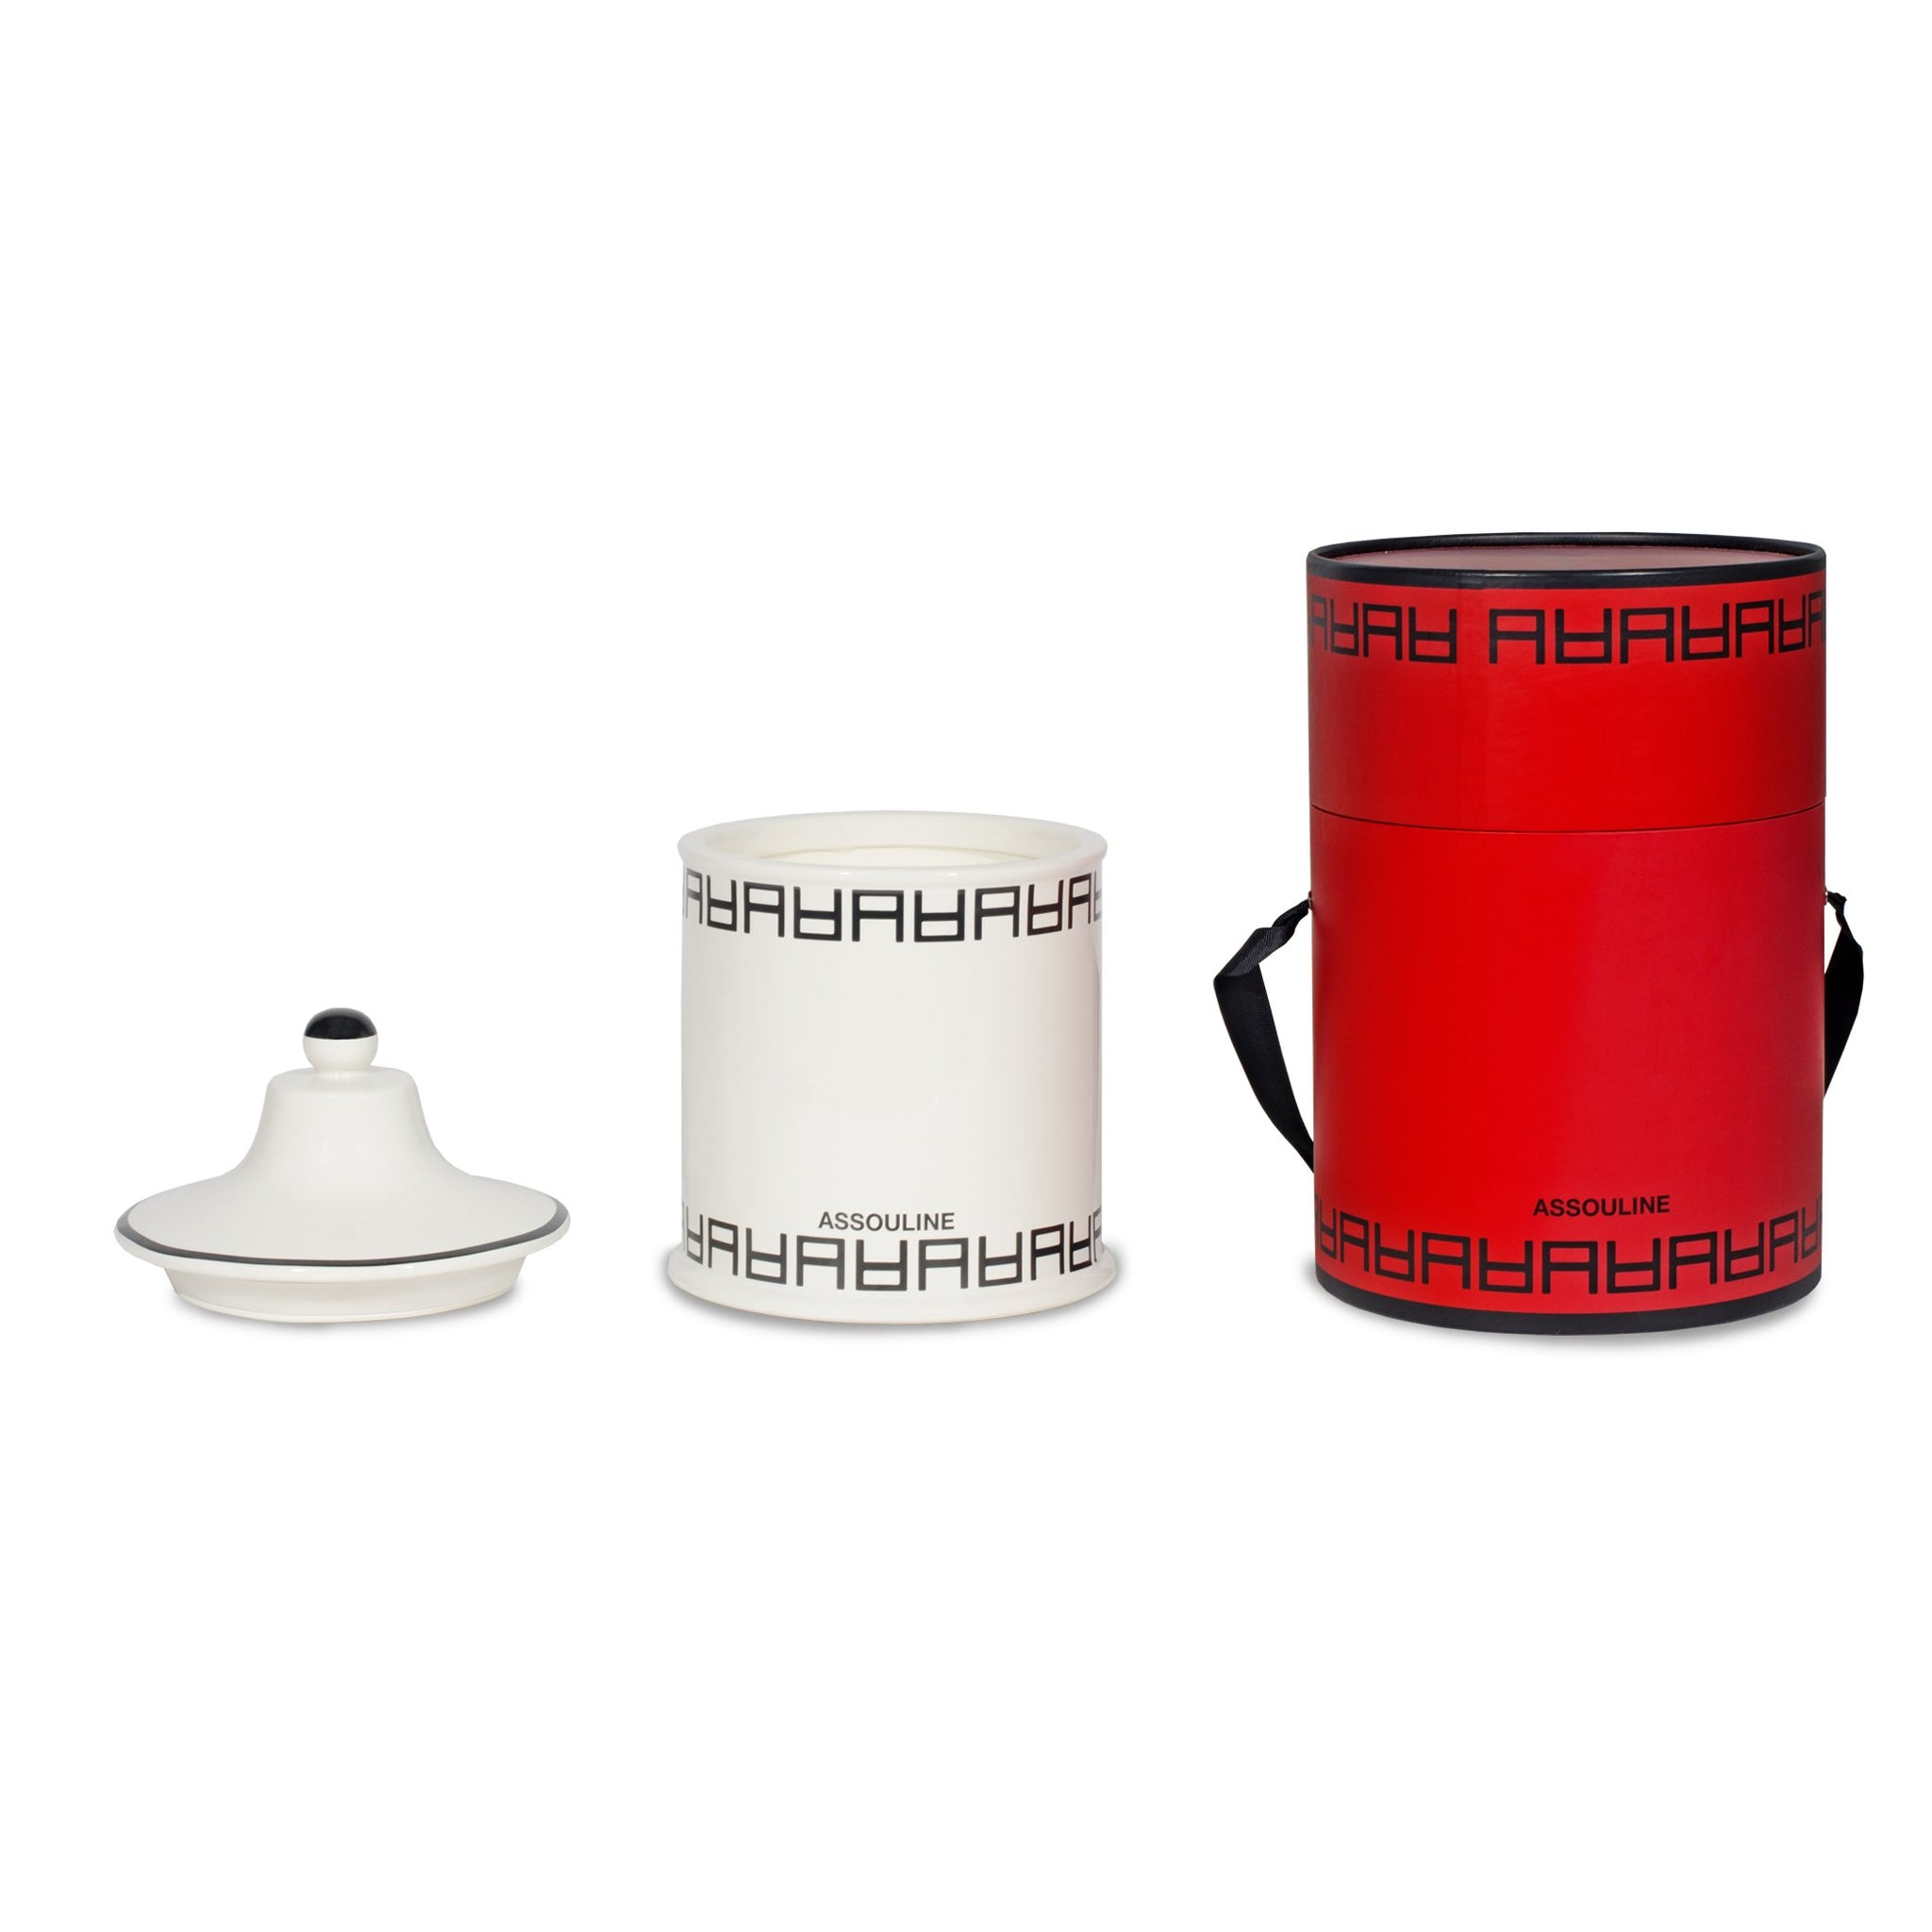 ASSOULINE Accessories Culture Lounge Candle XL